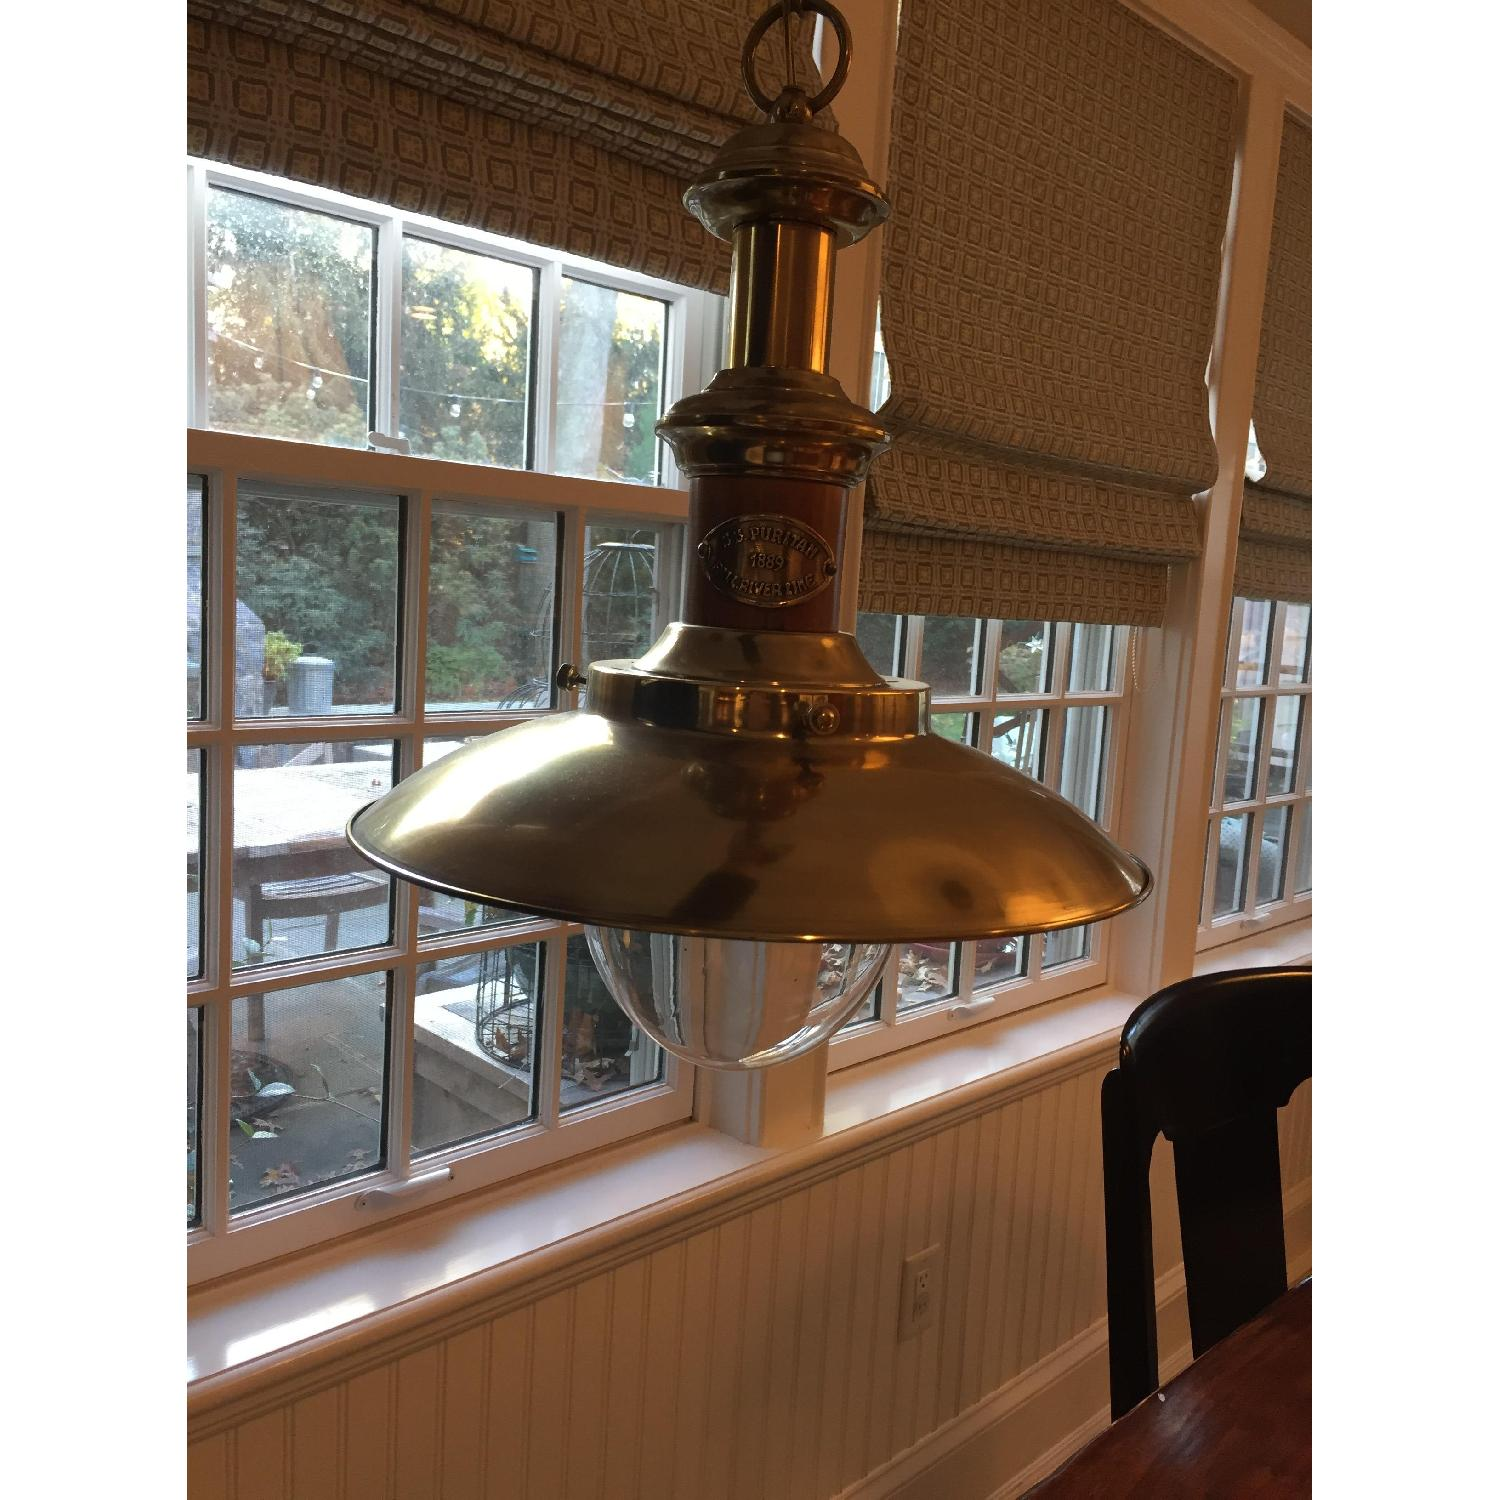 Fall River Lighting Industrial Chic Hanging Lamps-2